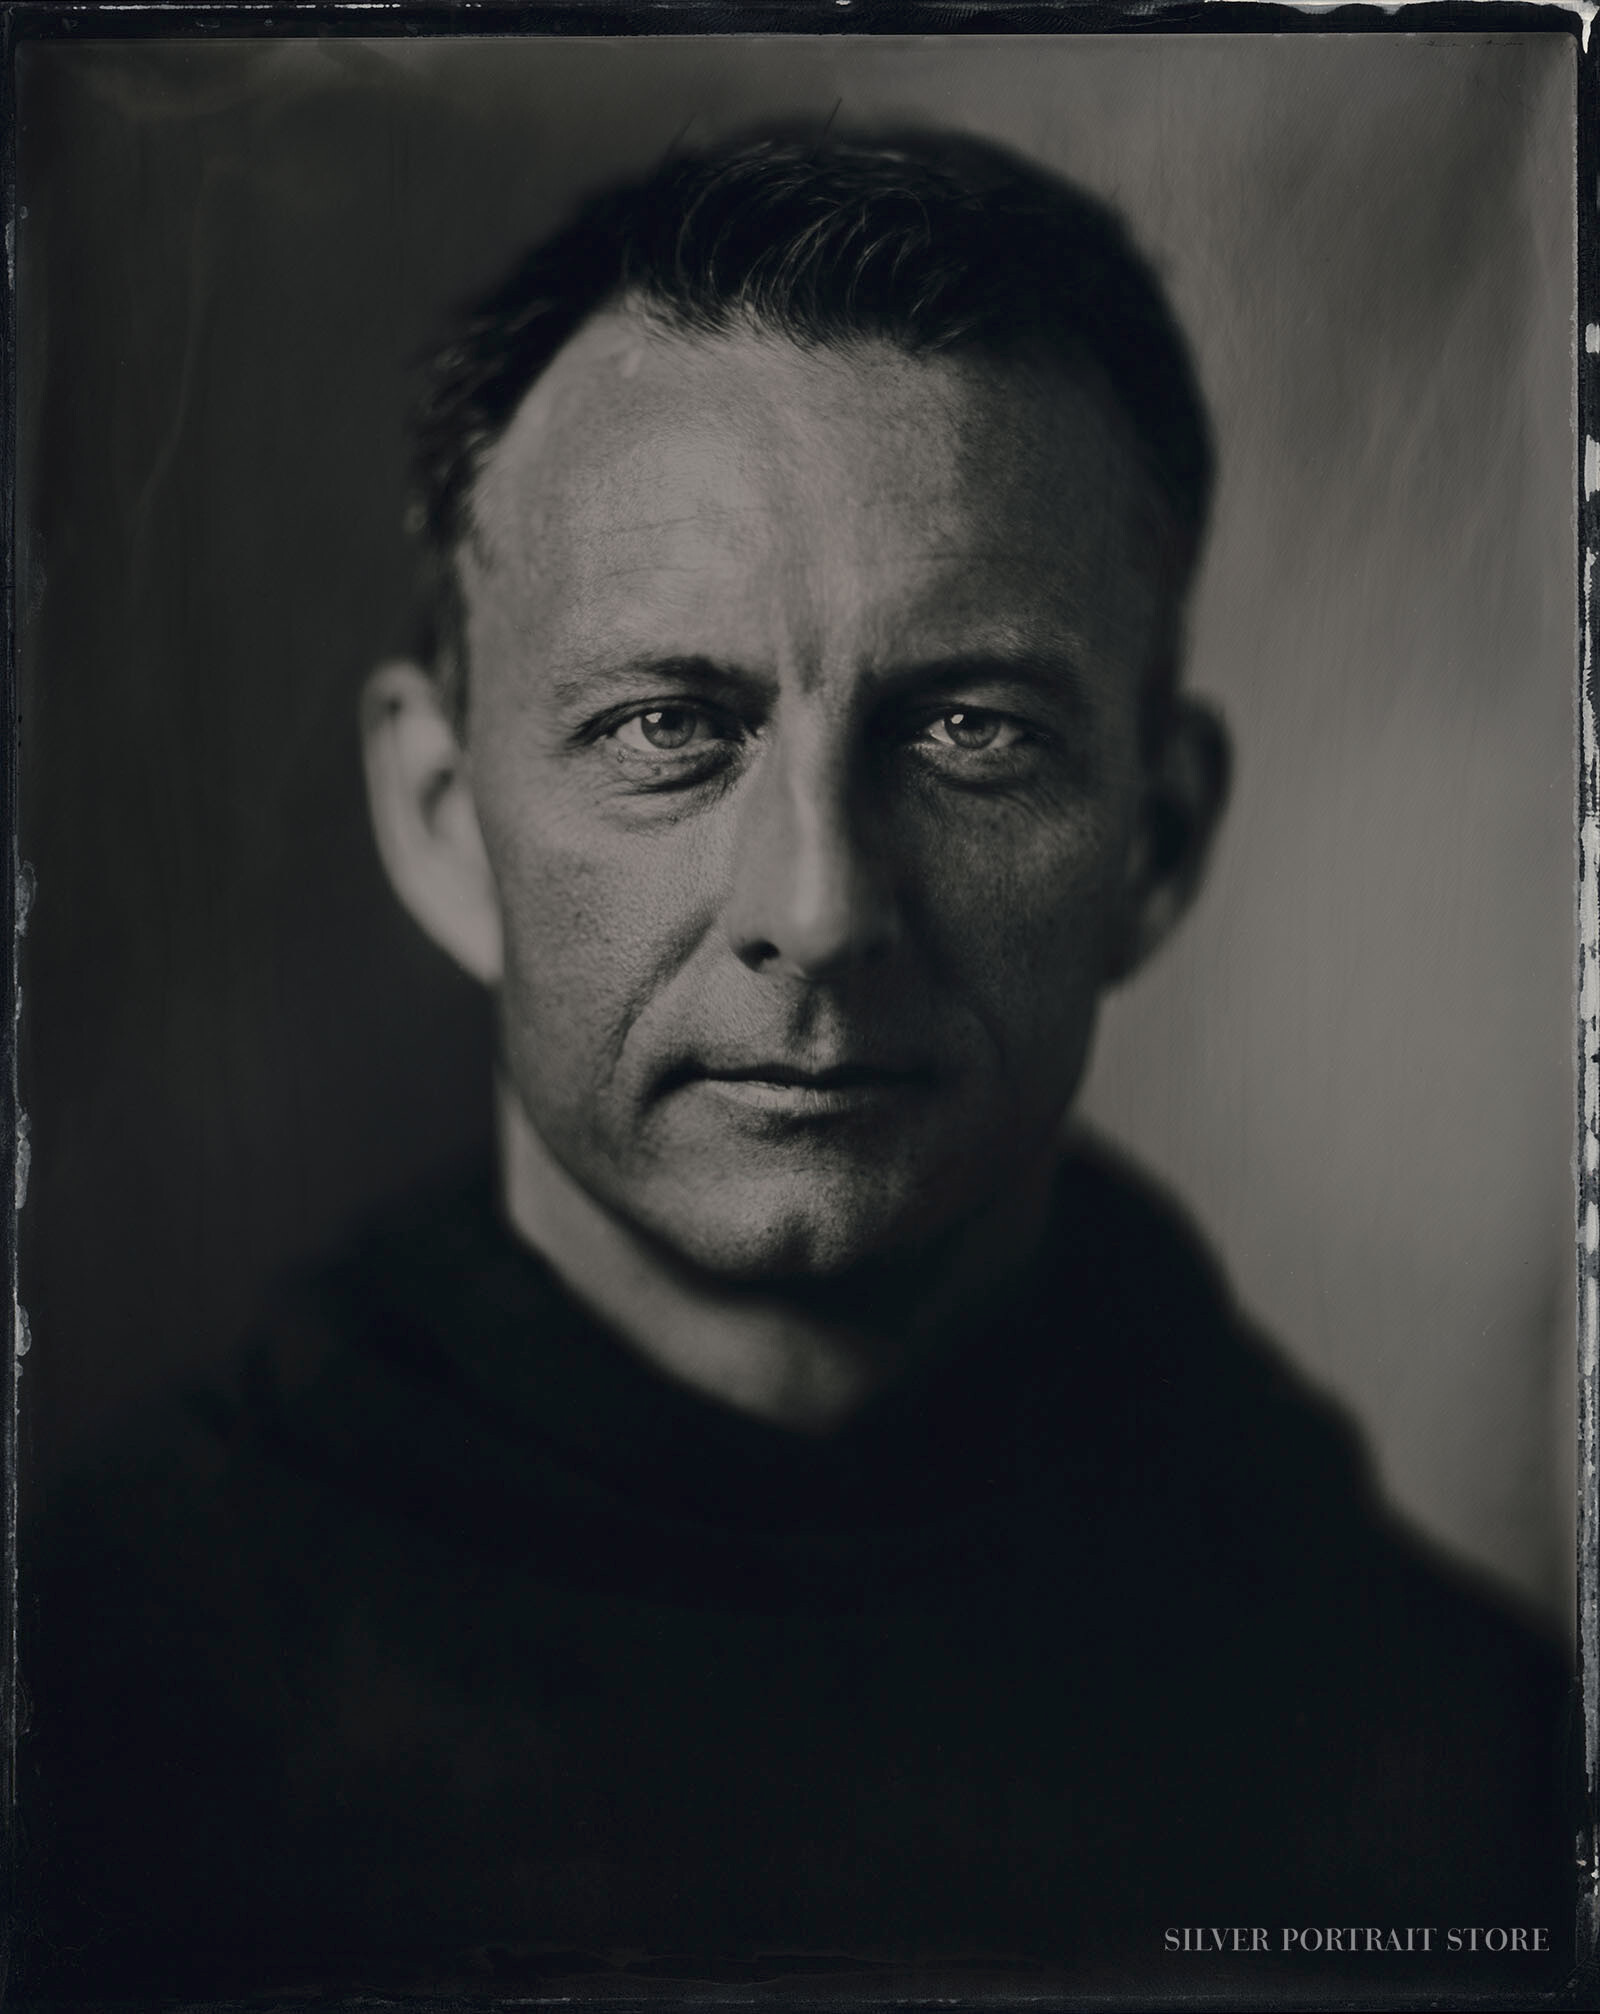 Trent-Silver Portrait Store-Scan from Wet plate collodion-Tintype 20 x 25 cm